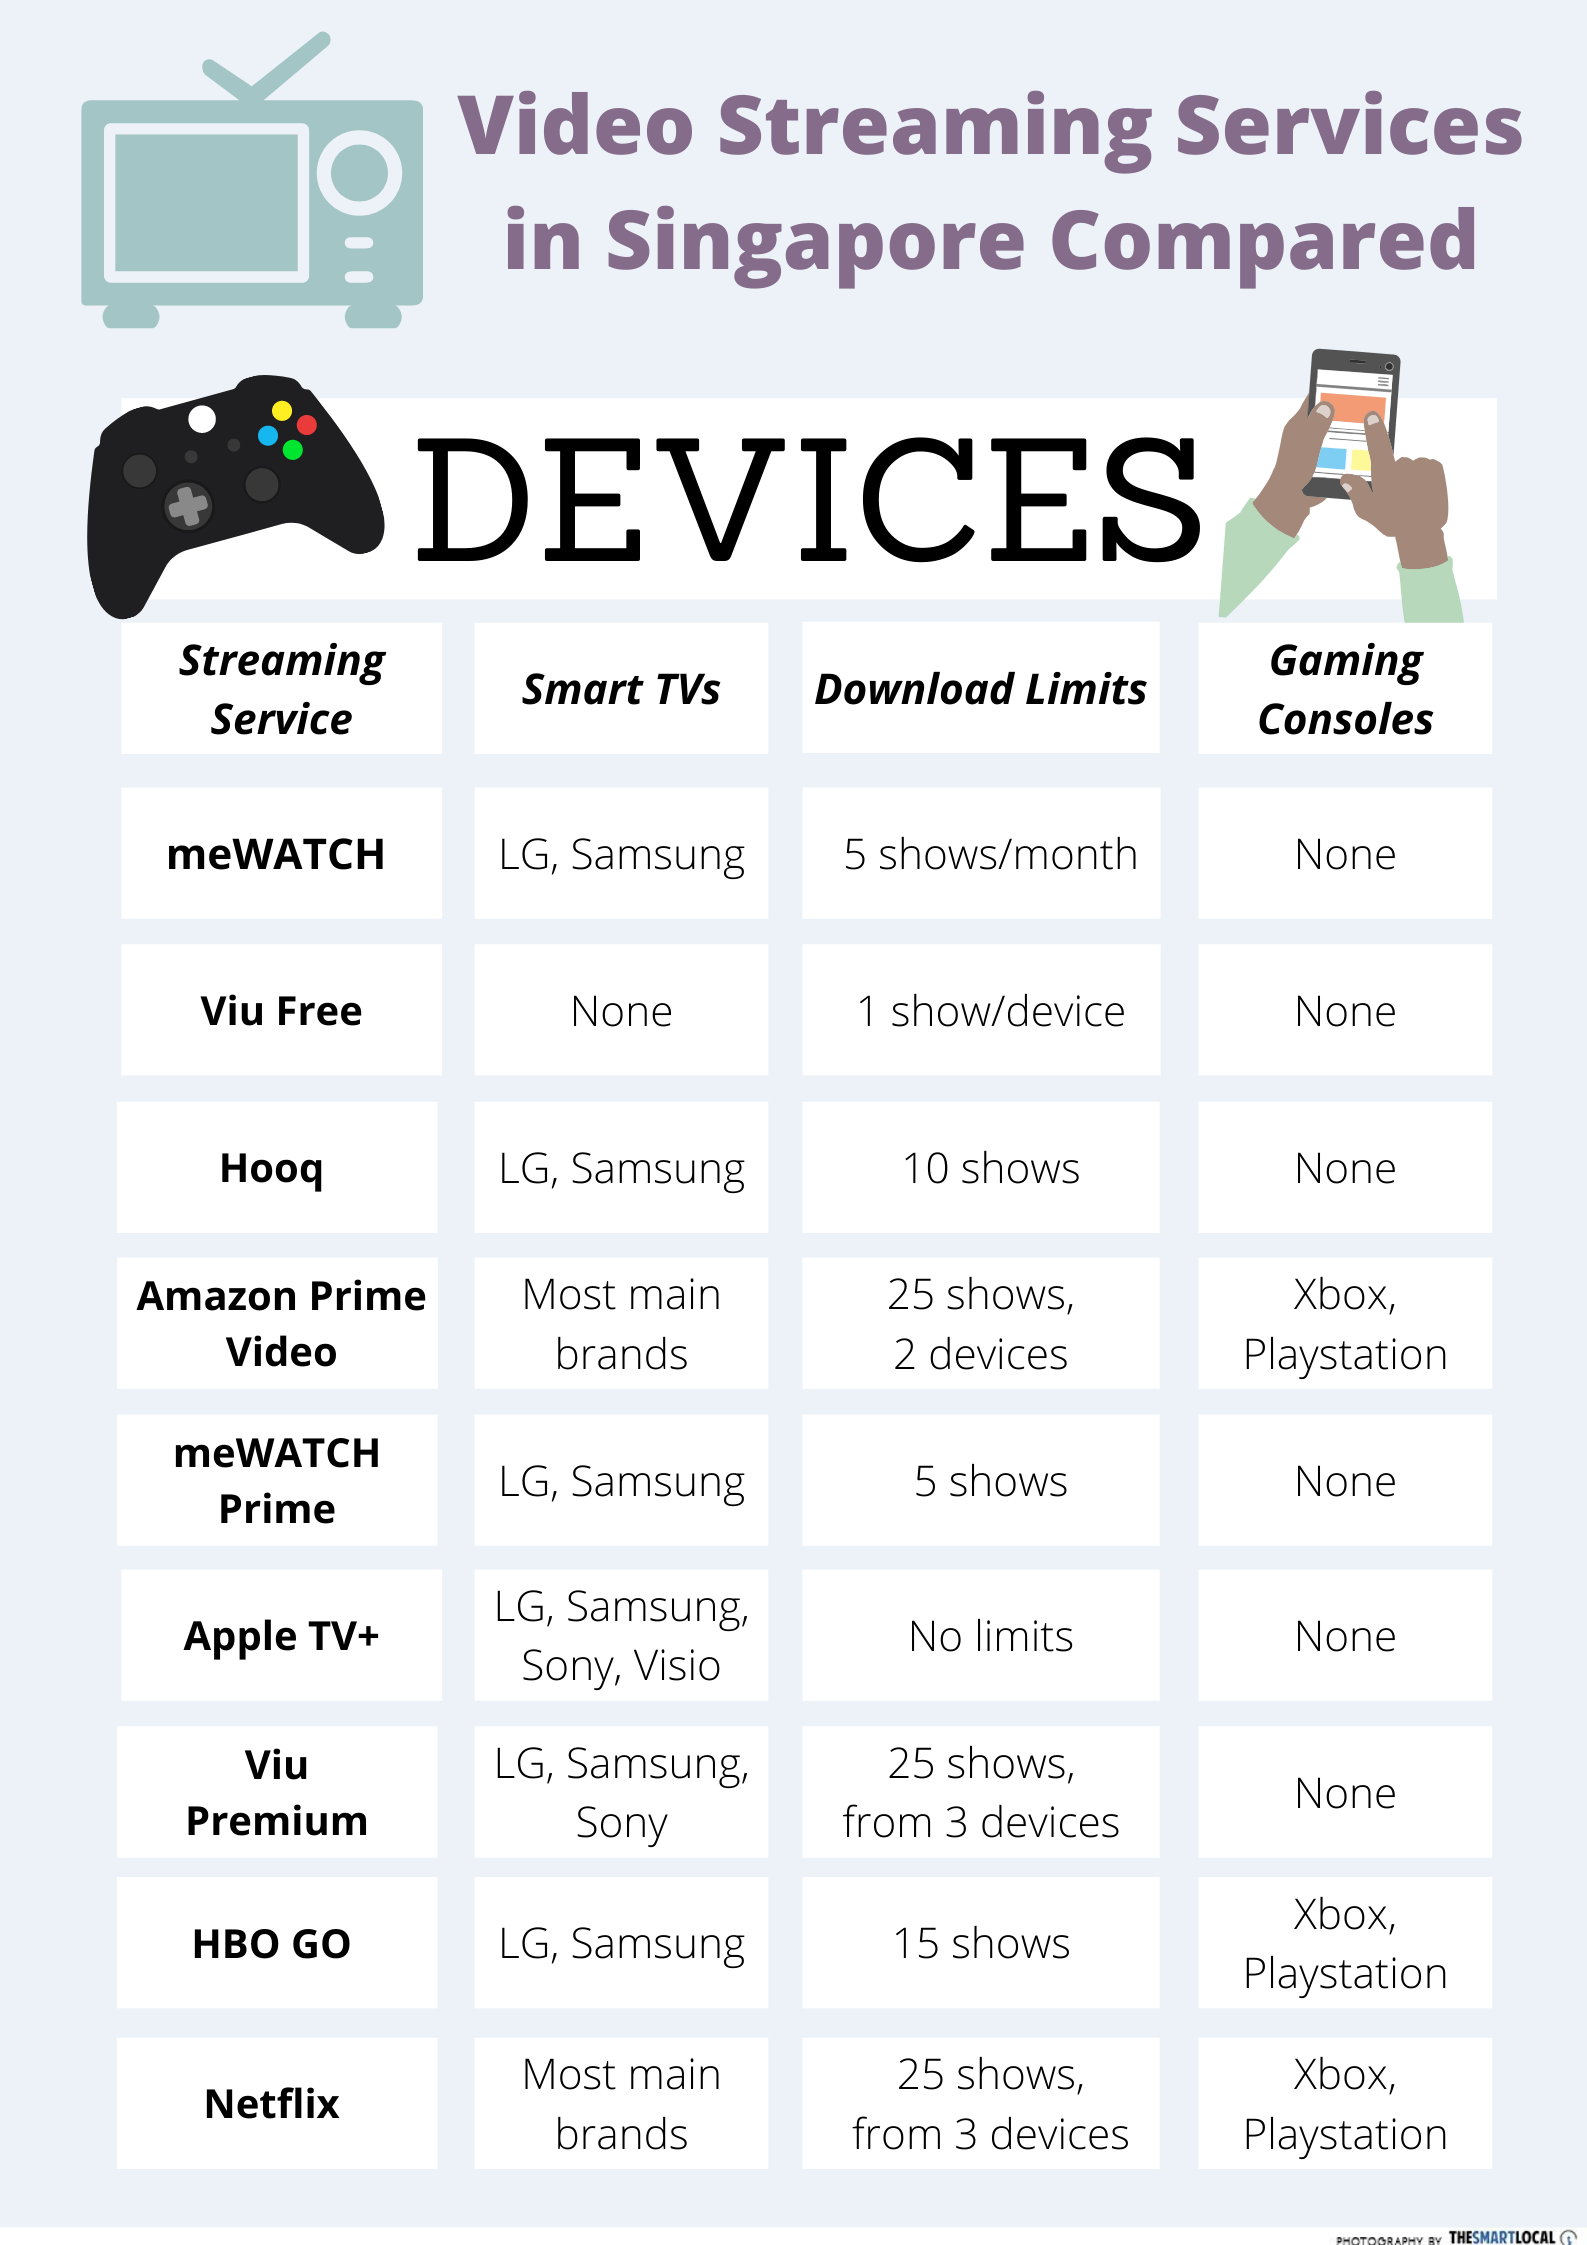 The device compatibility of the video streaming services available in Singapore.